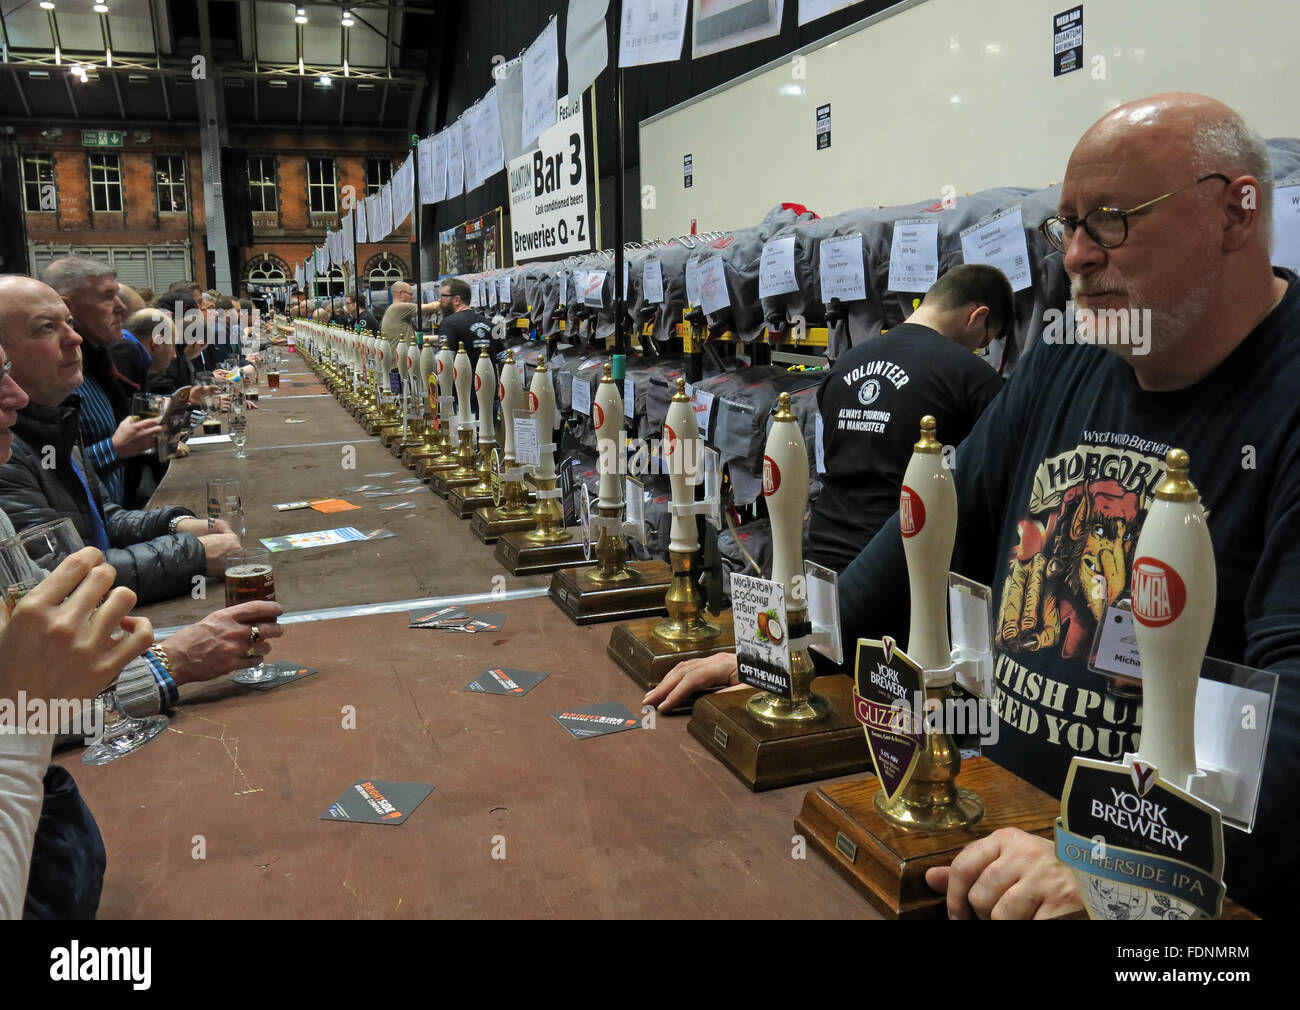 Lancashire,GB,great,britain,british,ale,bitter,Lancs,England,UK,2017,2018,2019,2020,Cider,ales,beers,manc,MancBeerFest,Jan,January,bar,pumps,pump,York,local,brew,brewing,brewery,pint,half,glass,celebrate,celebrating,ticket,drink,drinkers,alcohol,United Kingdom,Manchester Central,Beer Festival,GoTonySmith,@HotpixUK,at,the,barman,serve,server,serving,landlord,berrmats,mats,beermats,beermat,pull,pulling,cheers,bottoms,up,abuse,Buy Pictures of,Buy Images Of,Images of,Stock Images,Pulling a pint,Bottoms Up